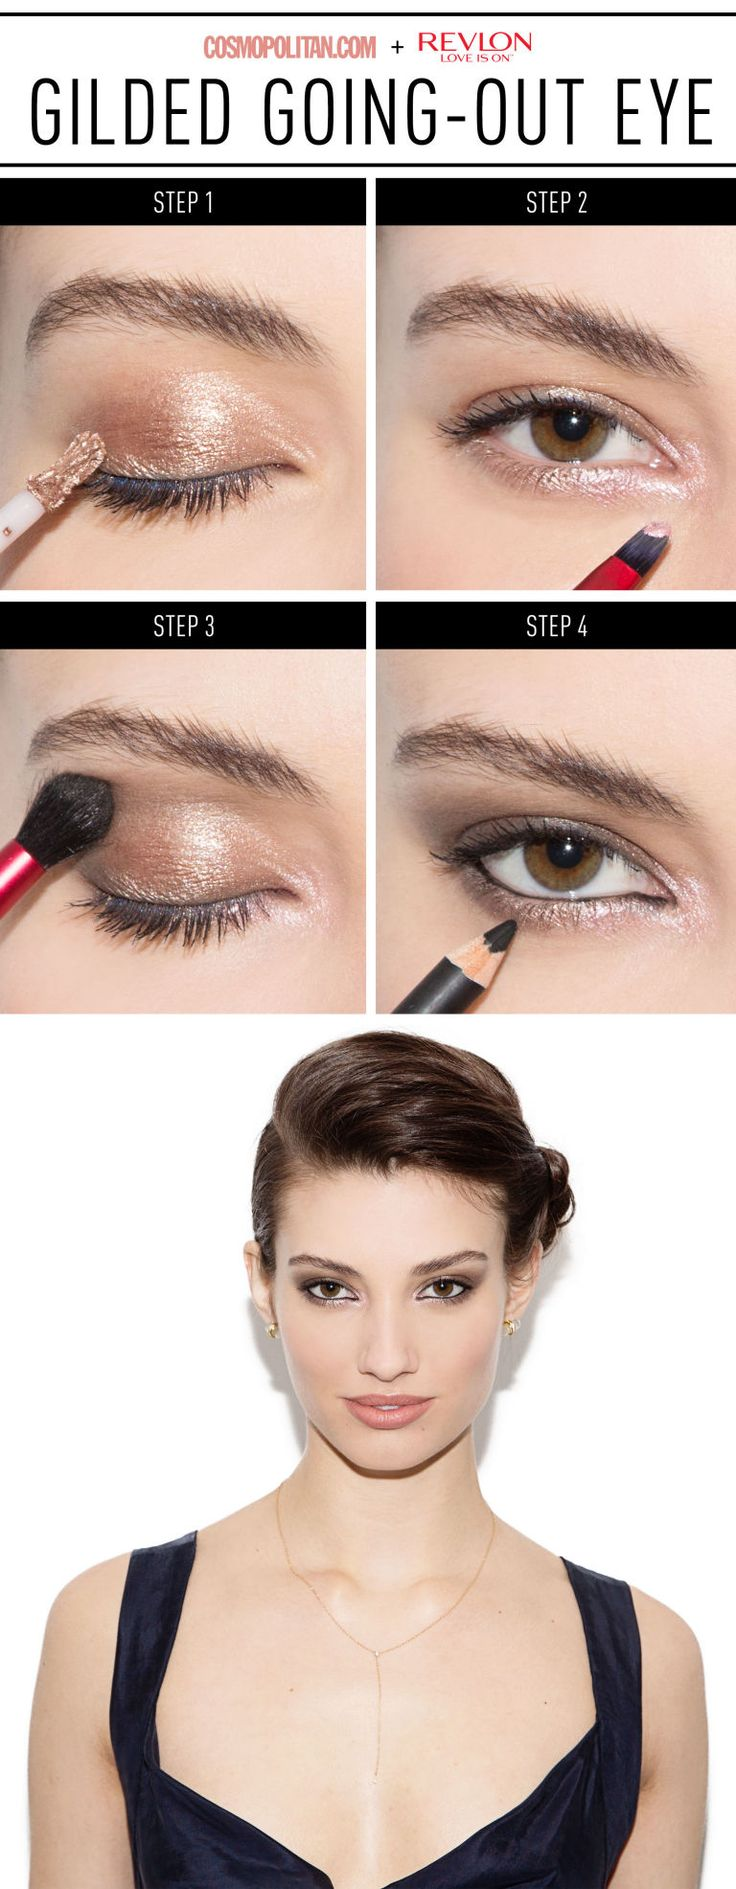 When you want him not to take his eyes off you, it doesn't hurt to have on some beautiful eye makeup.